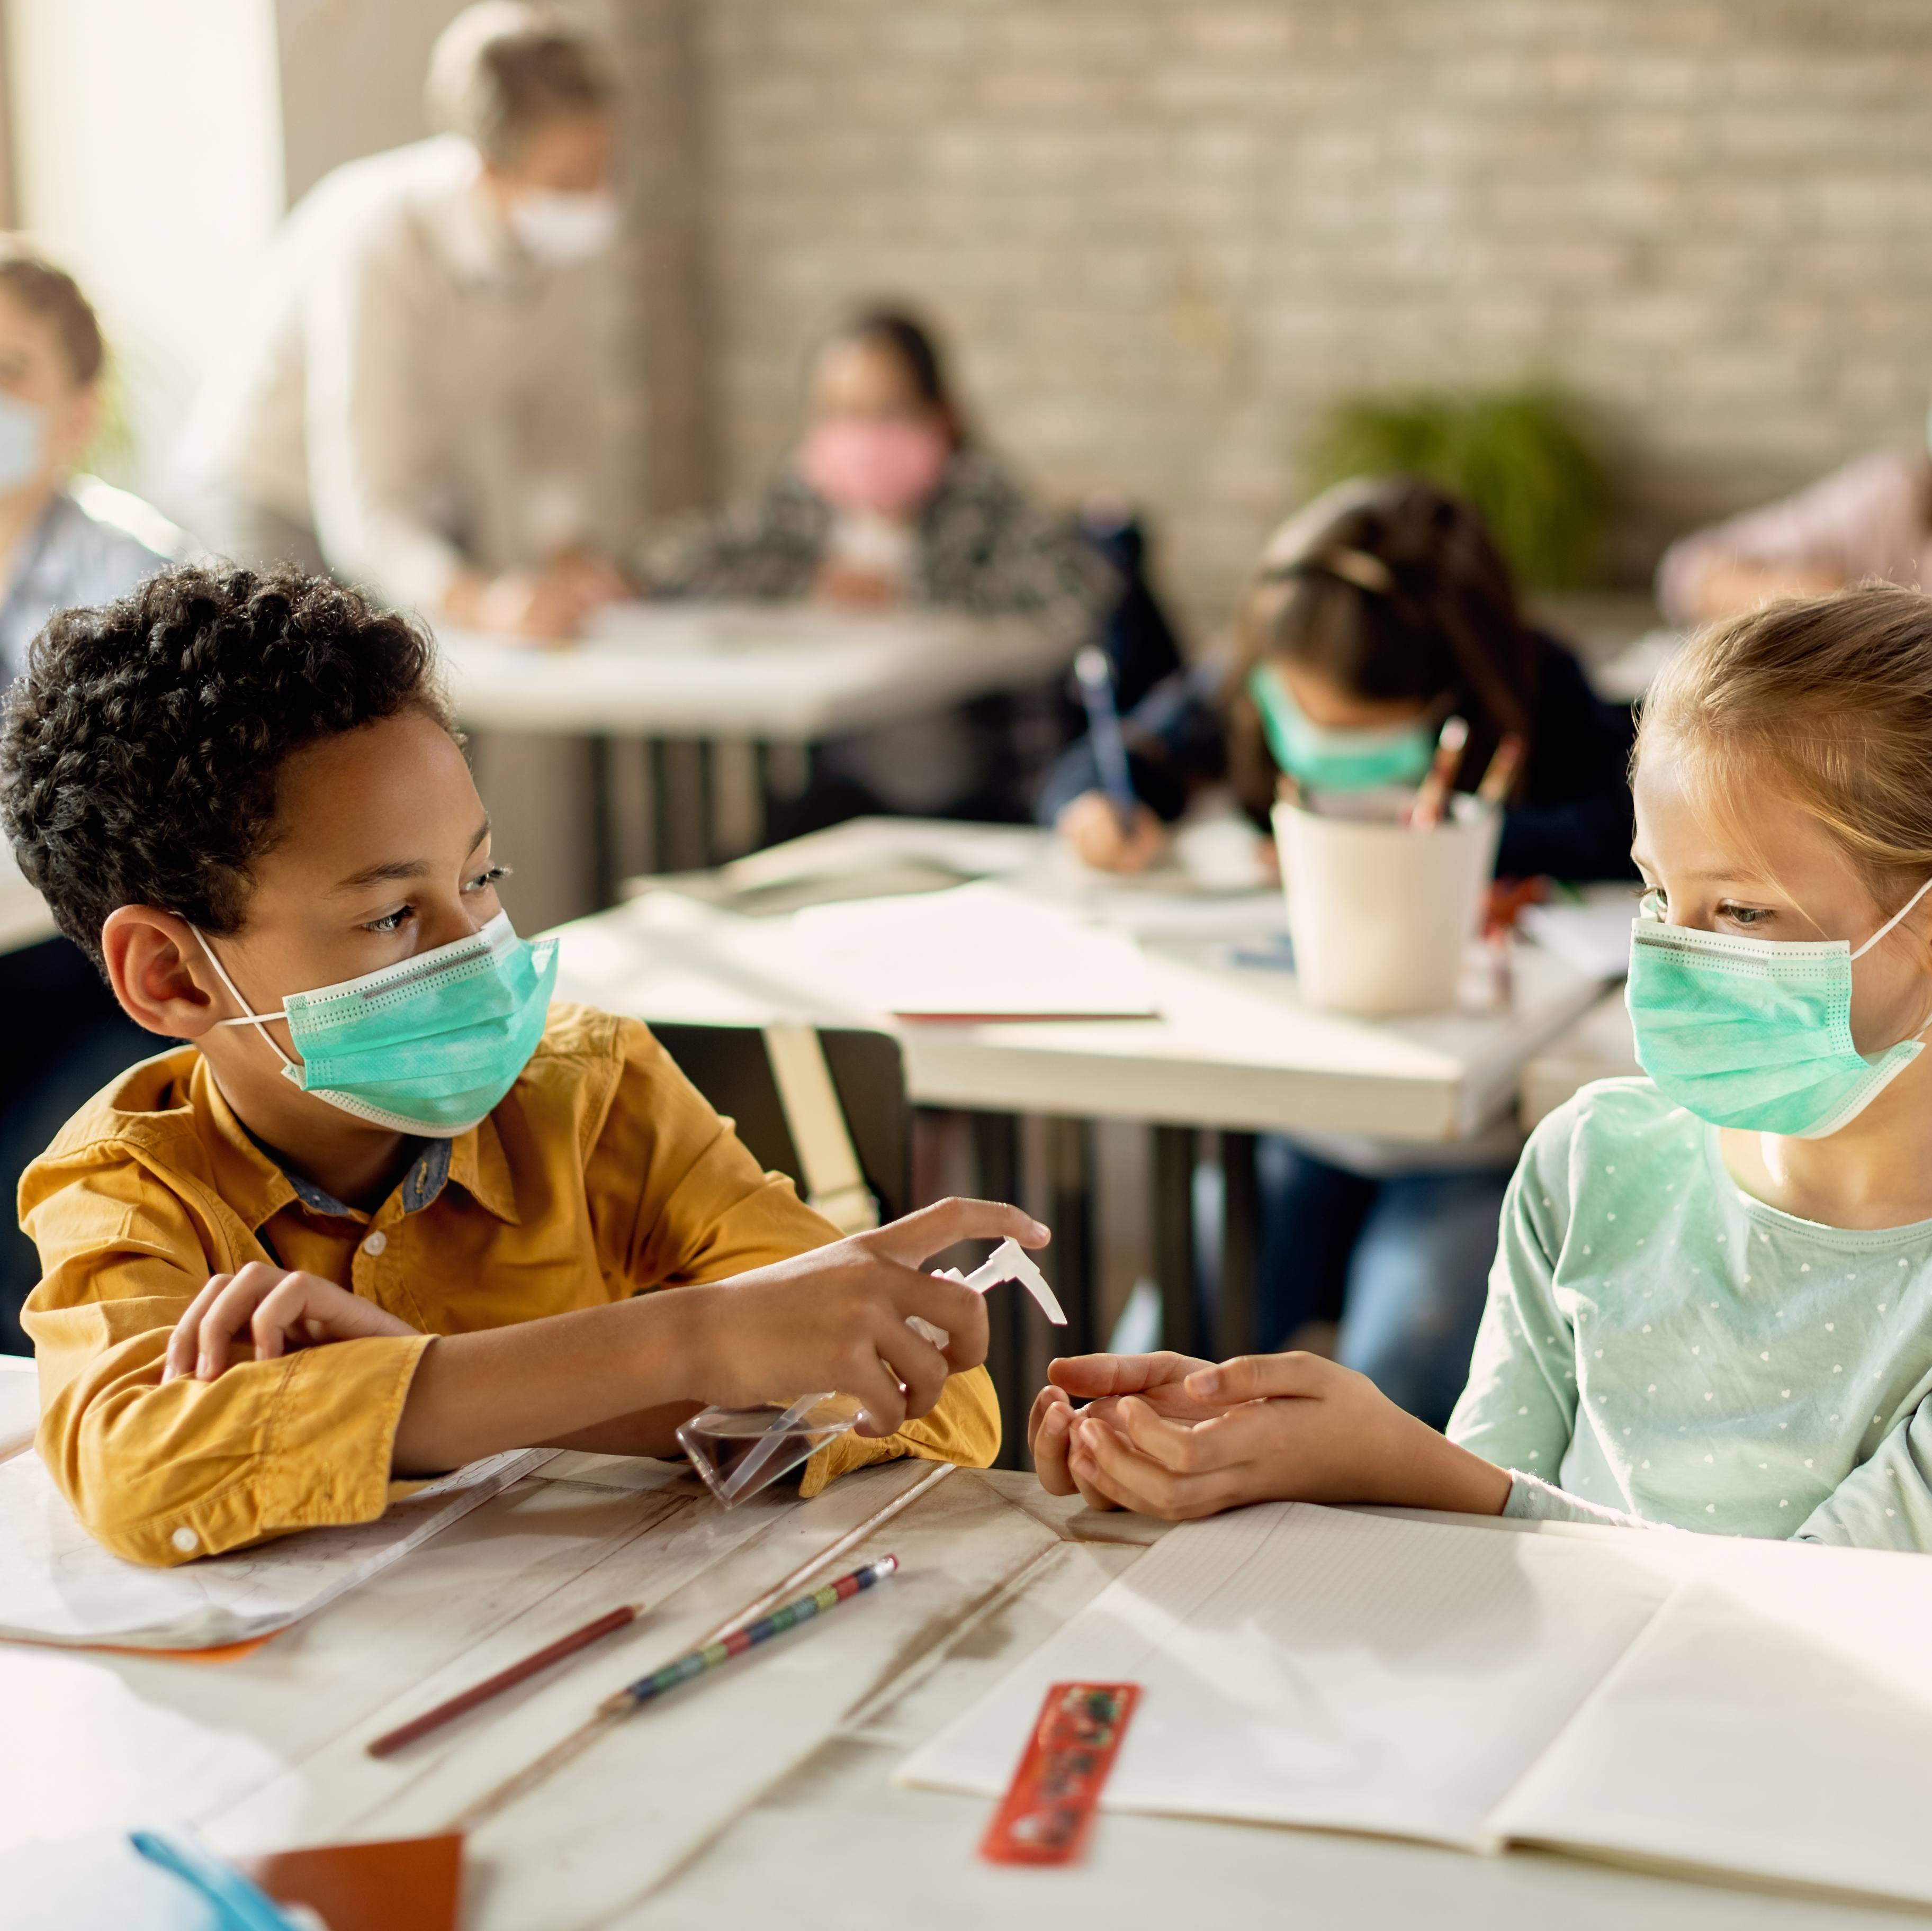 two young children, a Black boy and a white girl, in a school classroom wearing masks, sitting at desks sharing hand sanitizer